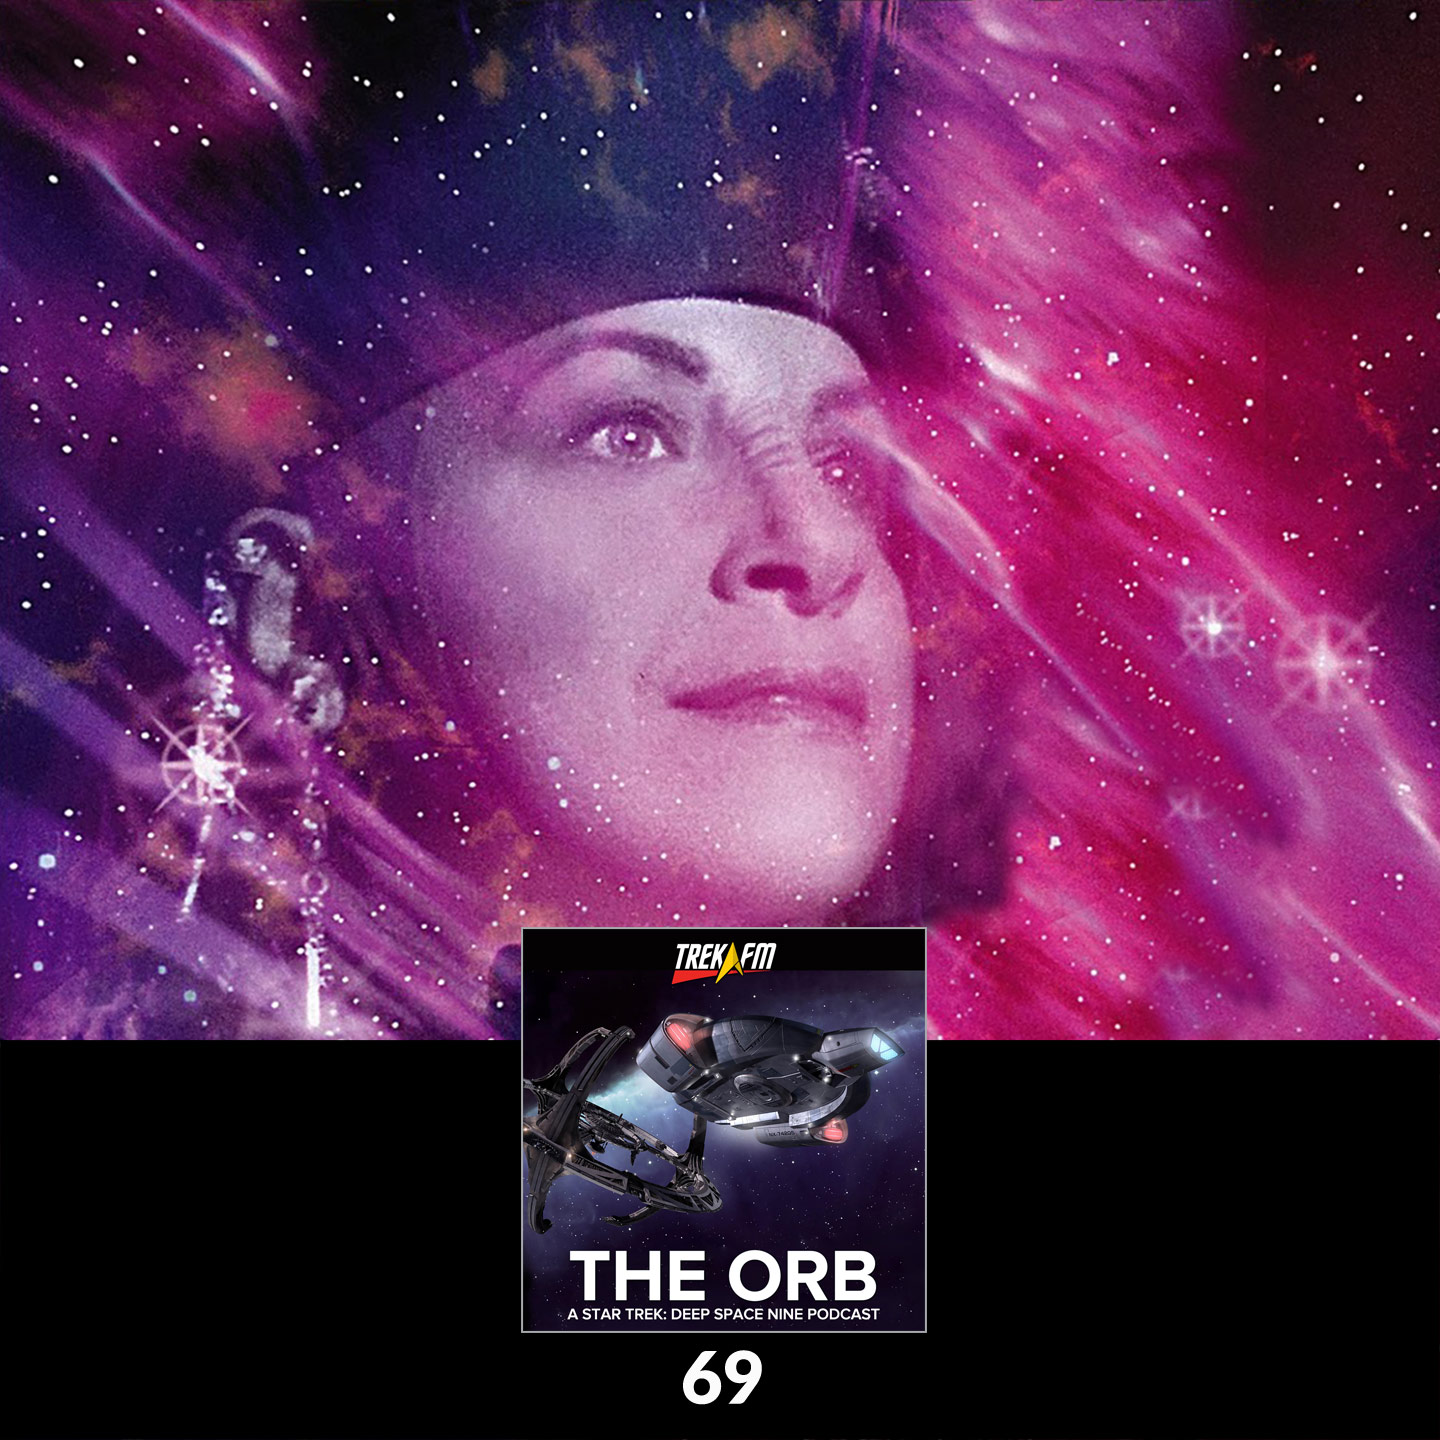 The Orb 69: Gentleness Missed